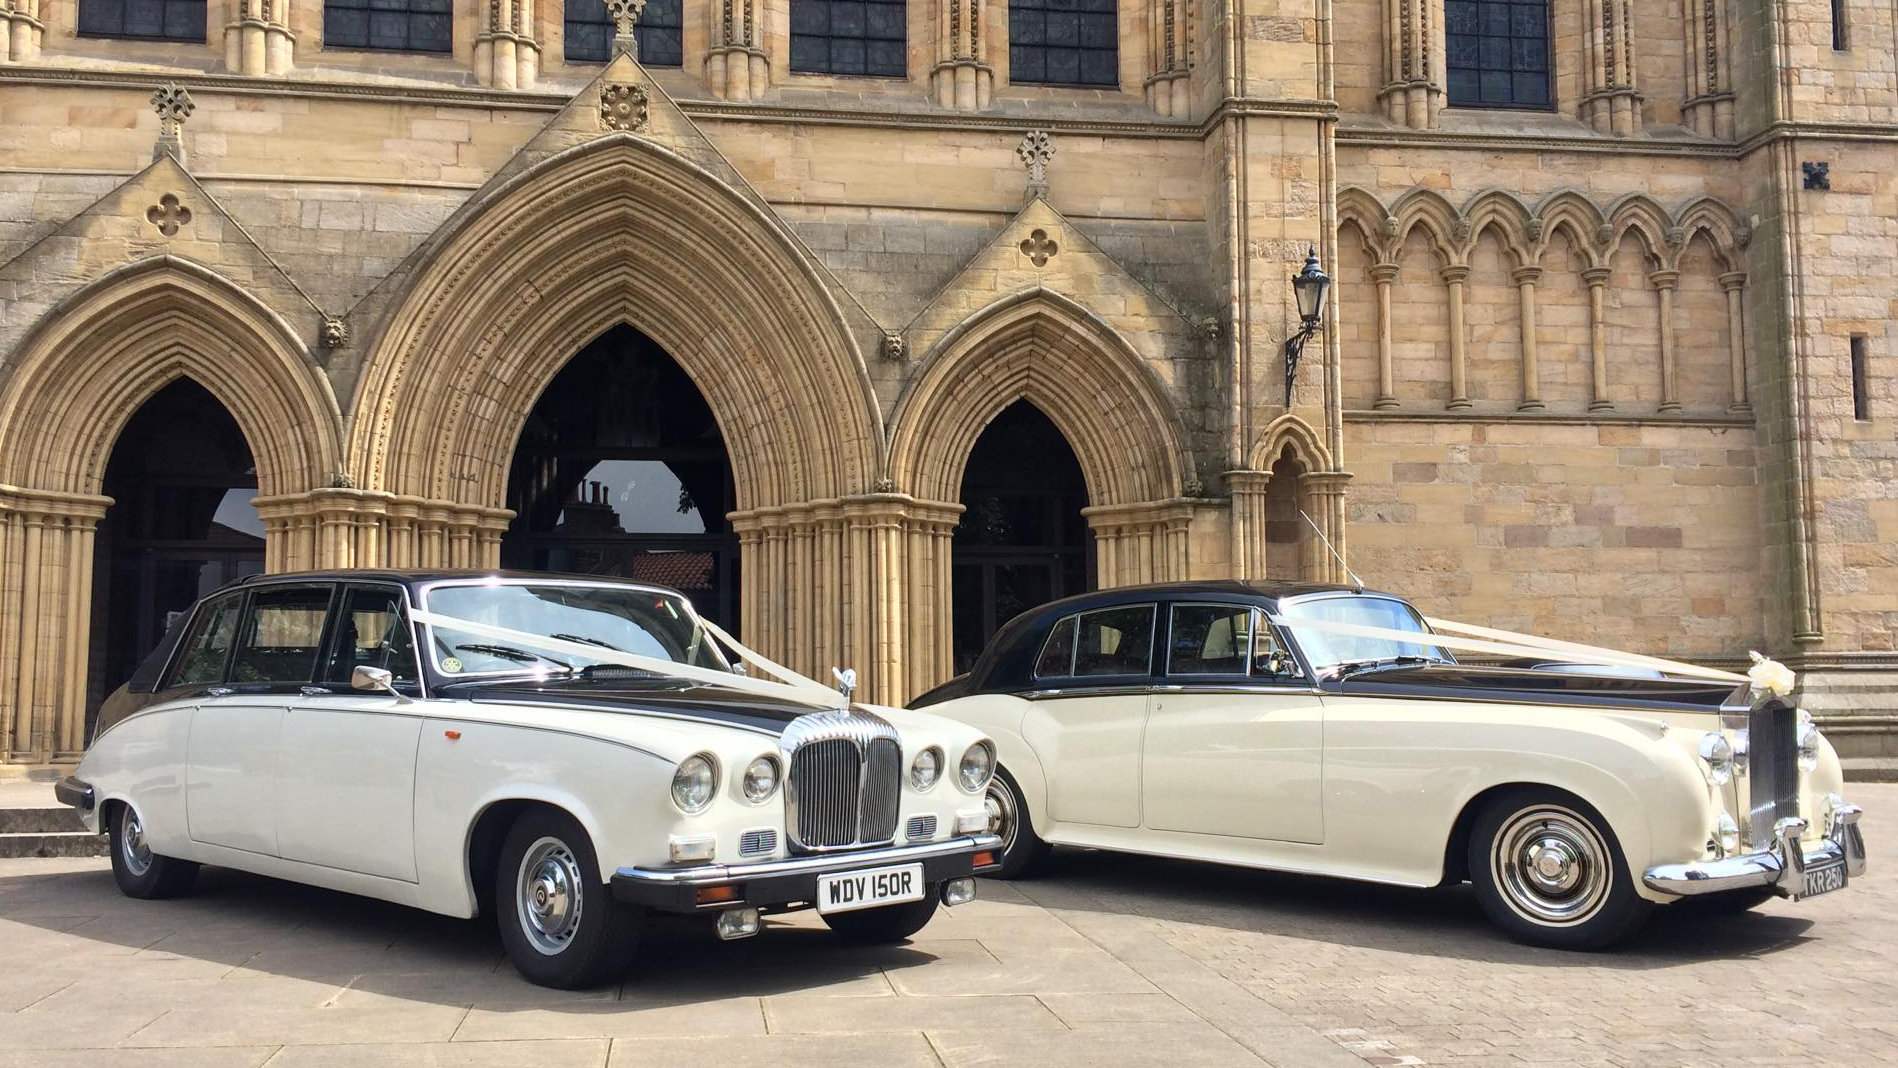 Yorkshire Wedding Car Hire for a Cathedral Wedding